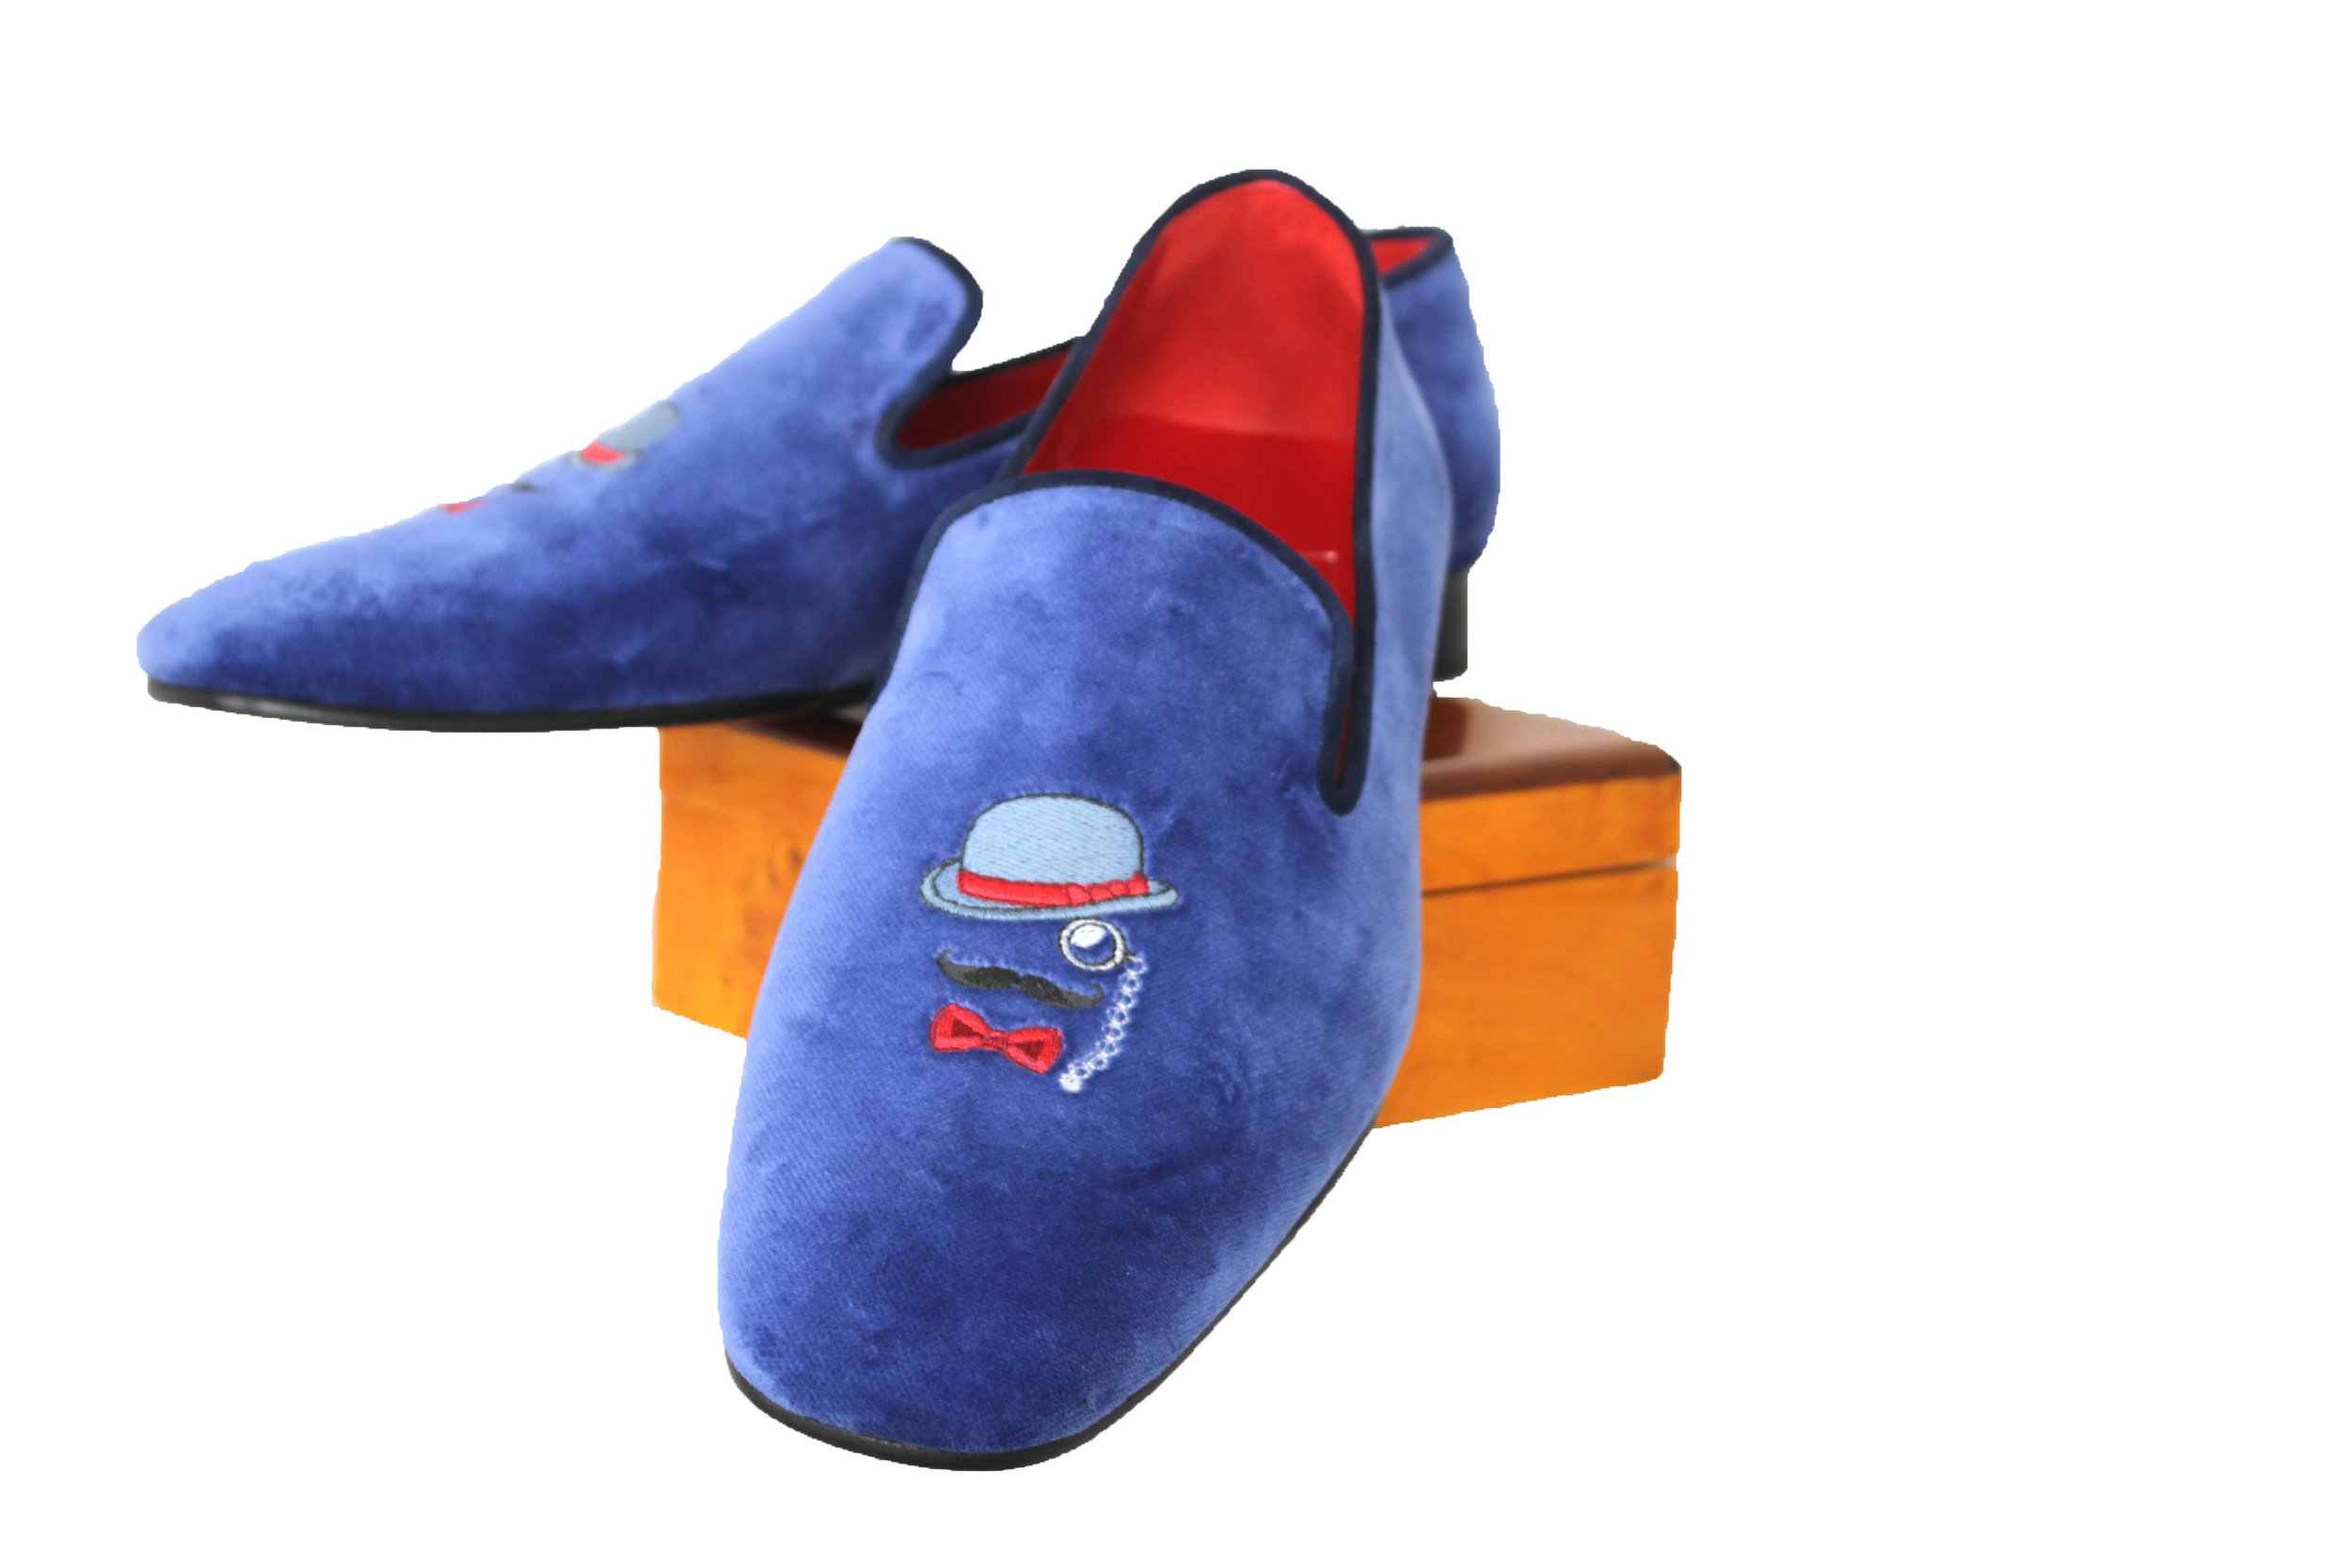 07 - Blue Slipper Catalog_IMG 3095.jpg